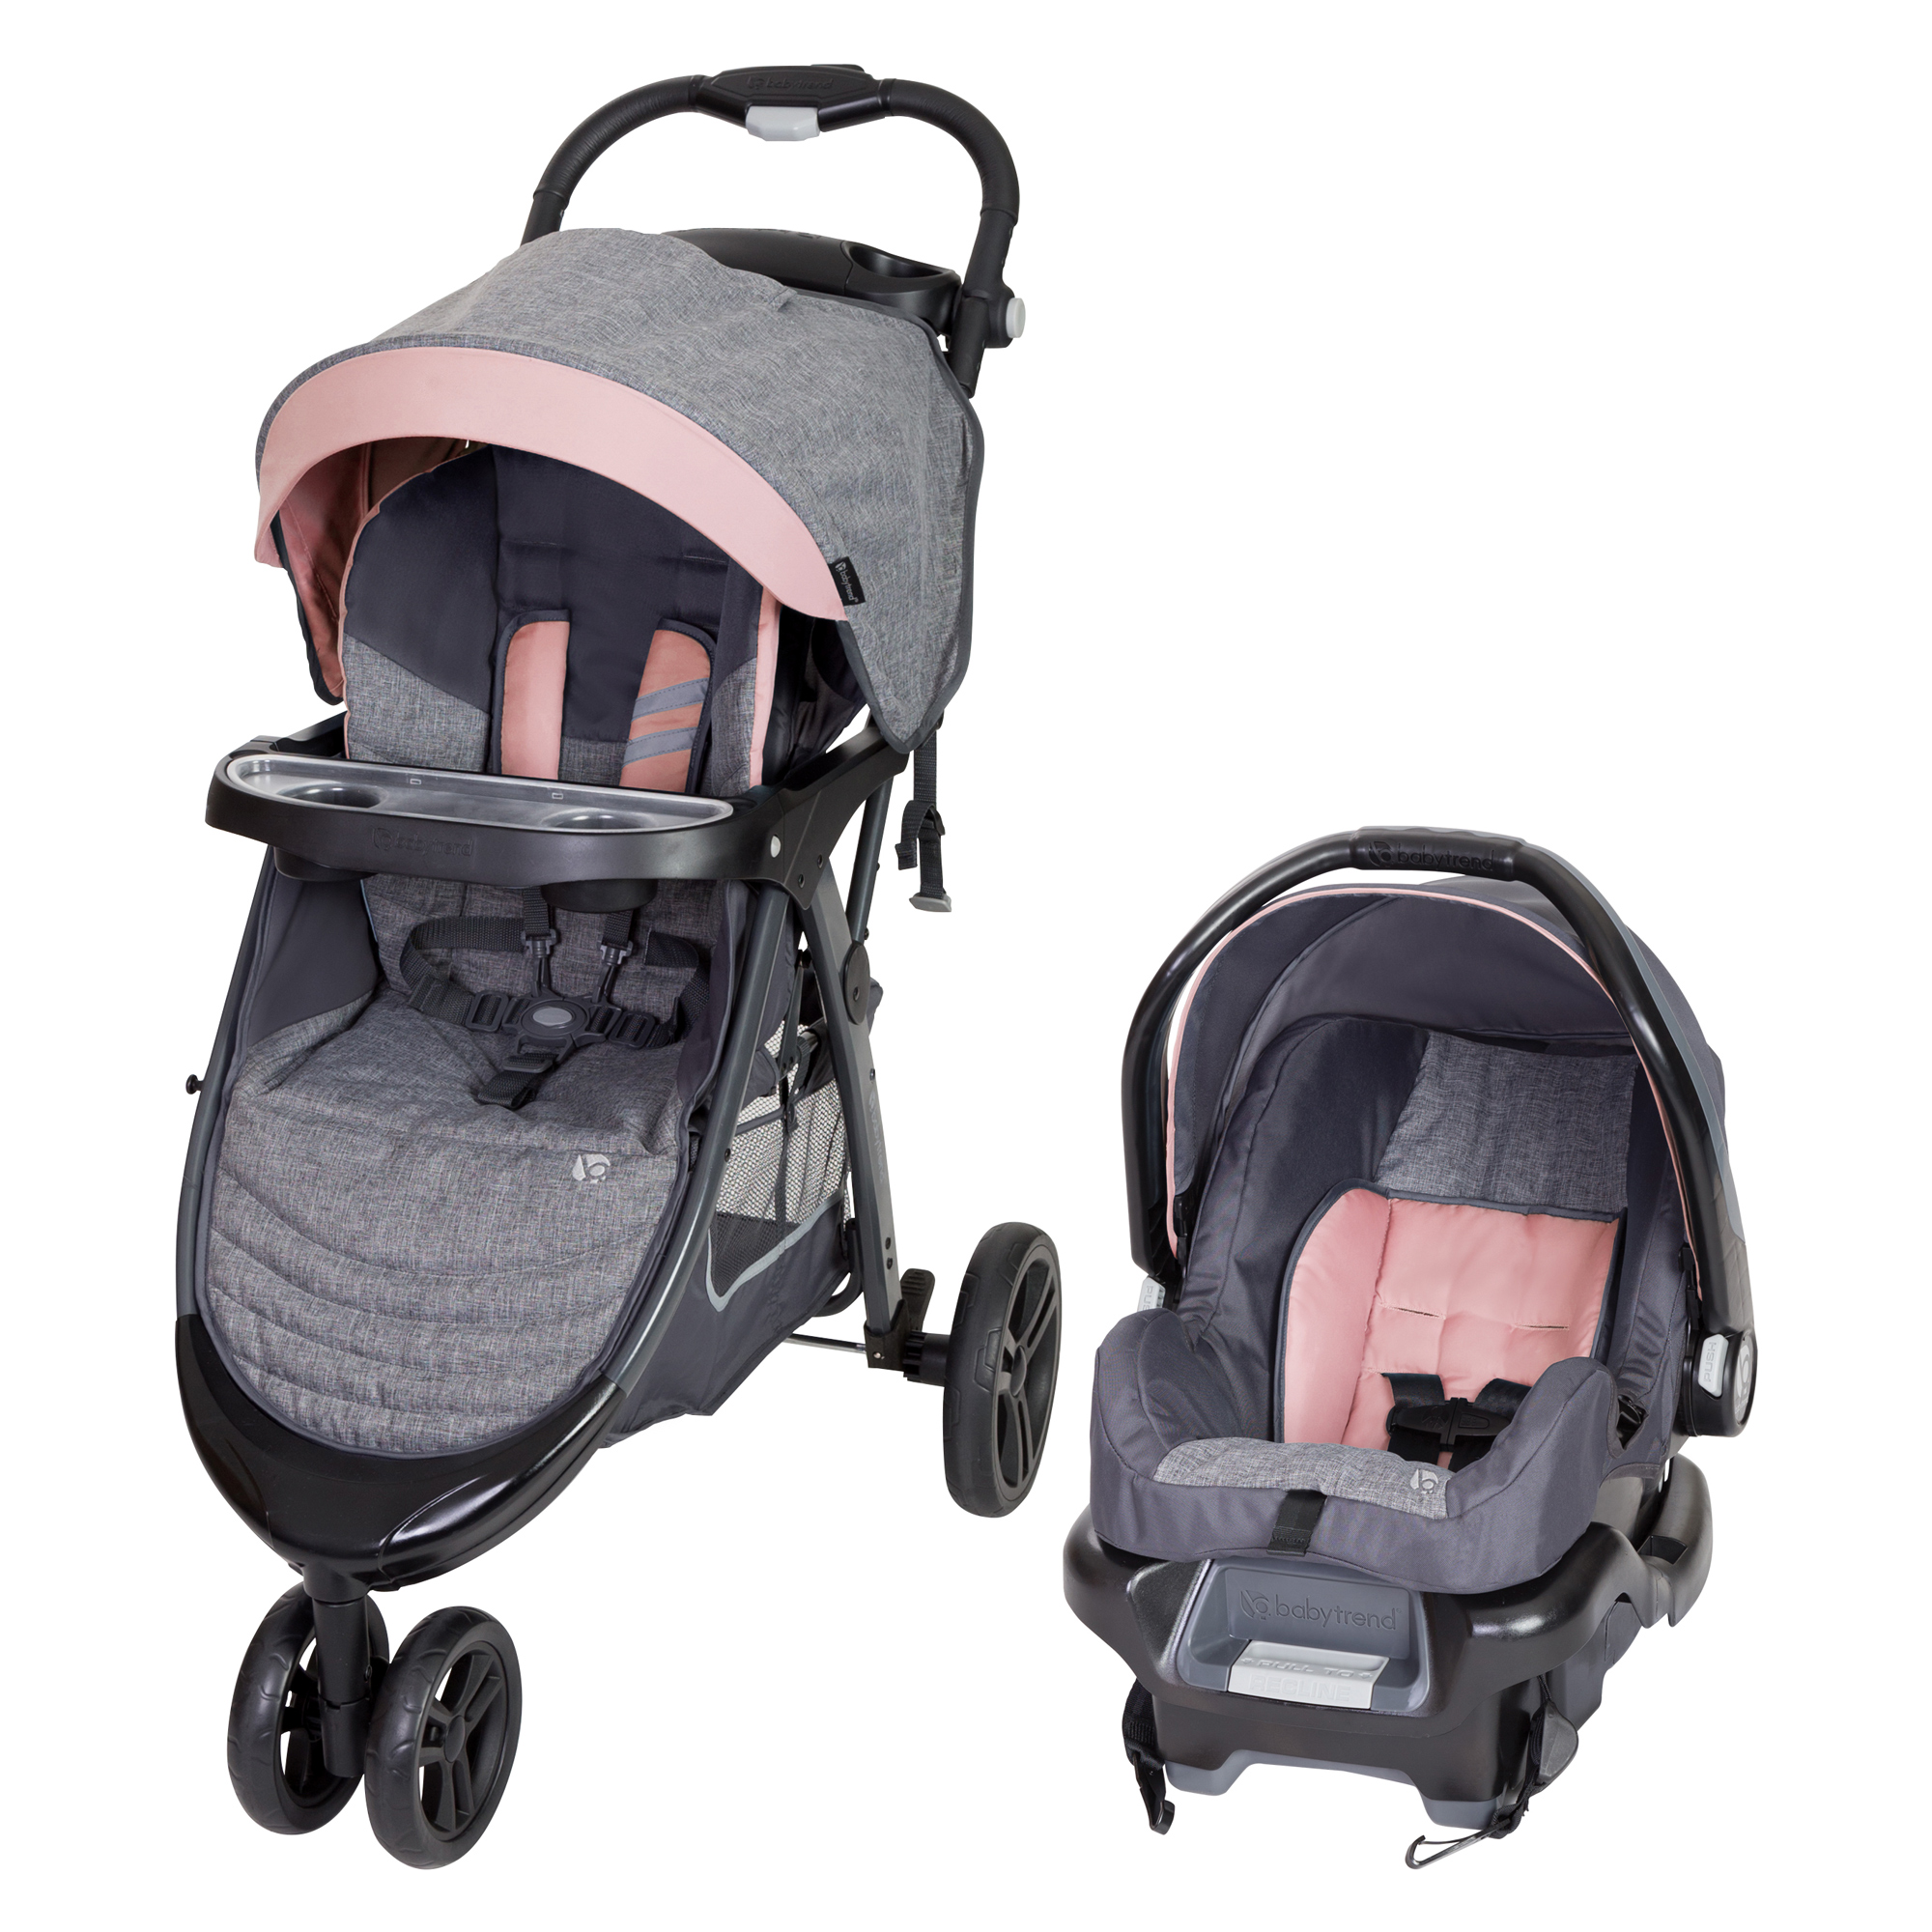 Baby Trend Skyline 35 Travel System - Starlight Pink